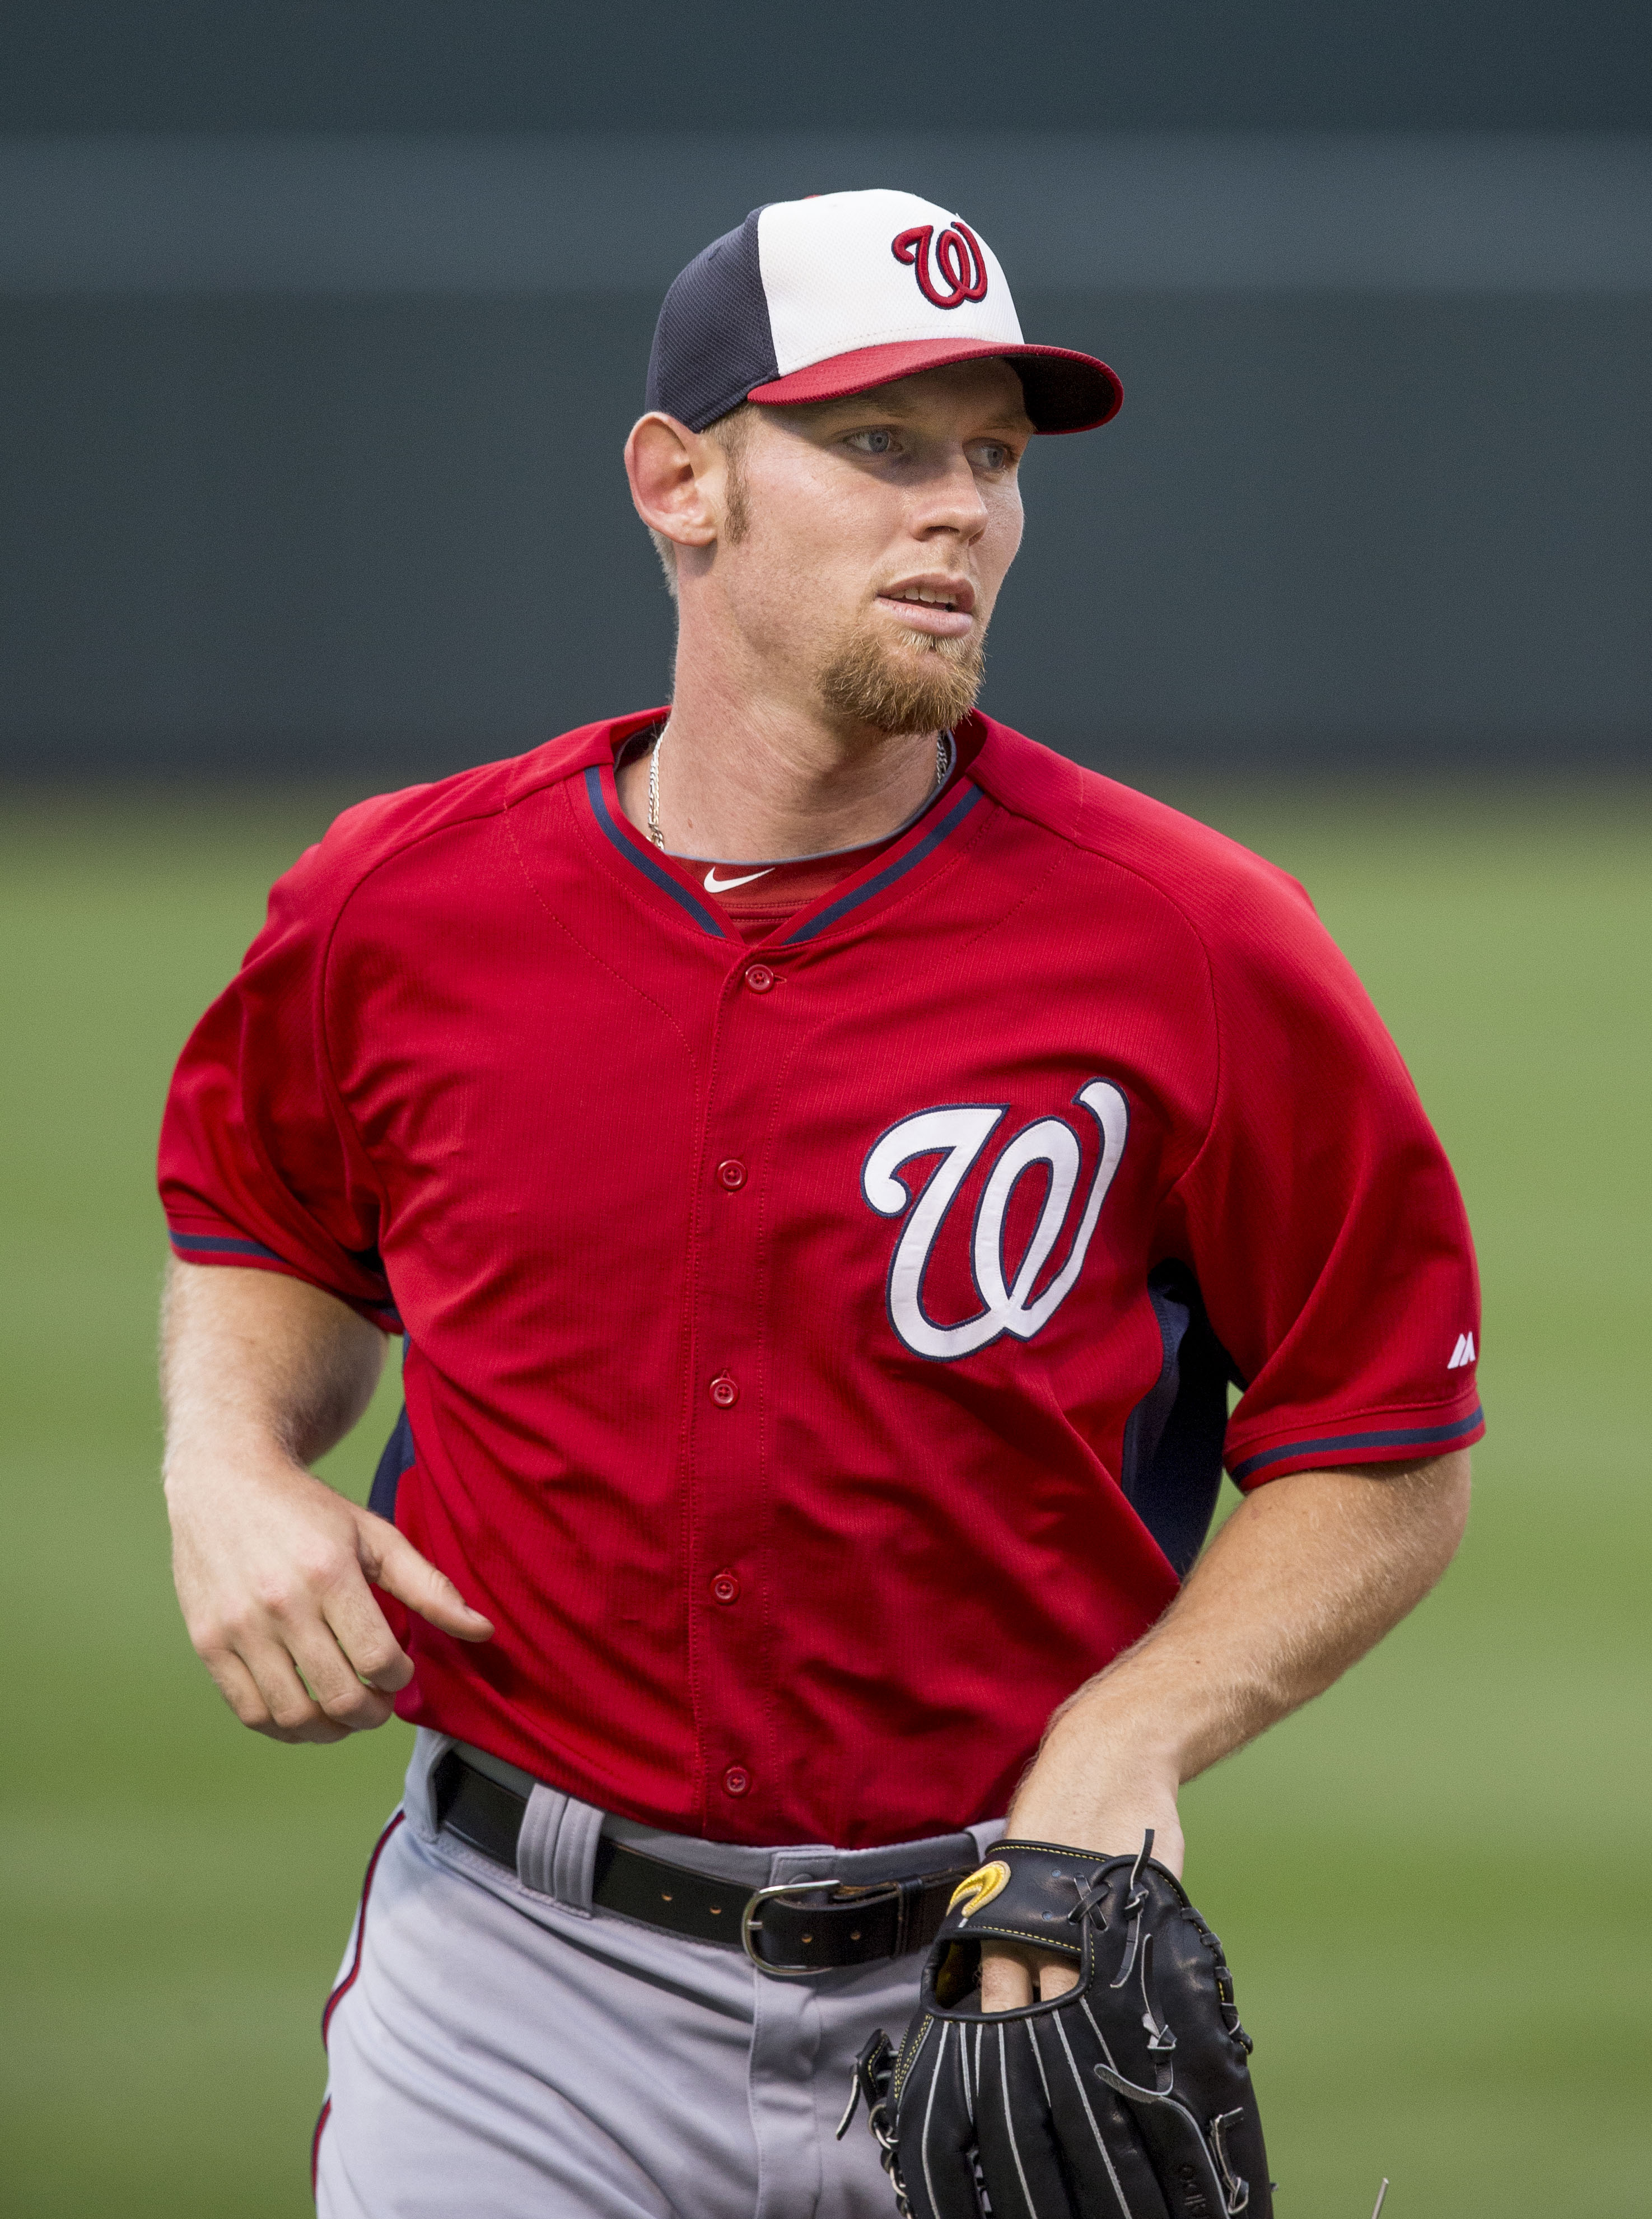 August 20, 2019 -- The Nationals are predicted to beat the Pirates on the road. The Nationals top hitter is Juan Soto and projected starting pitcher is Stephen Strasburg.